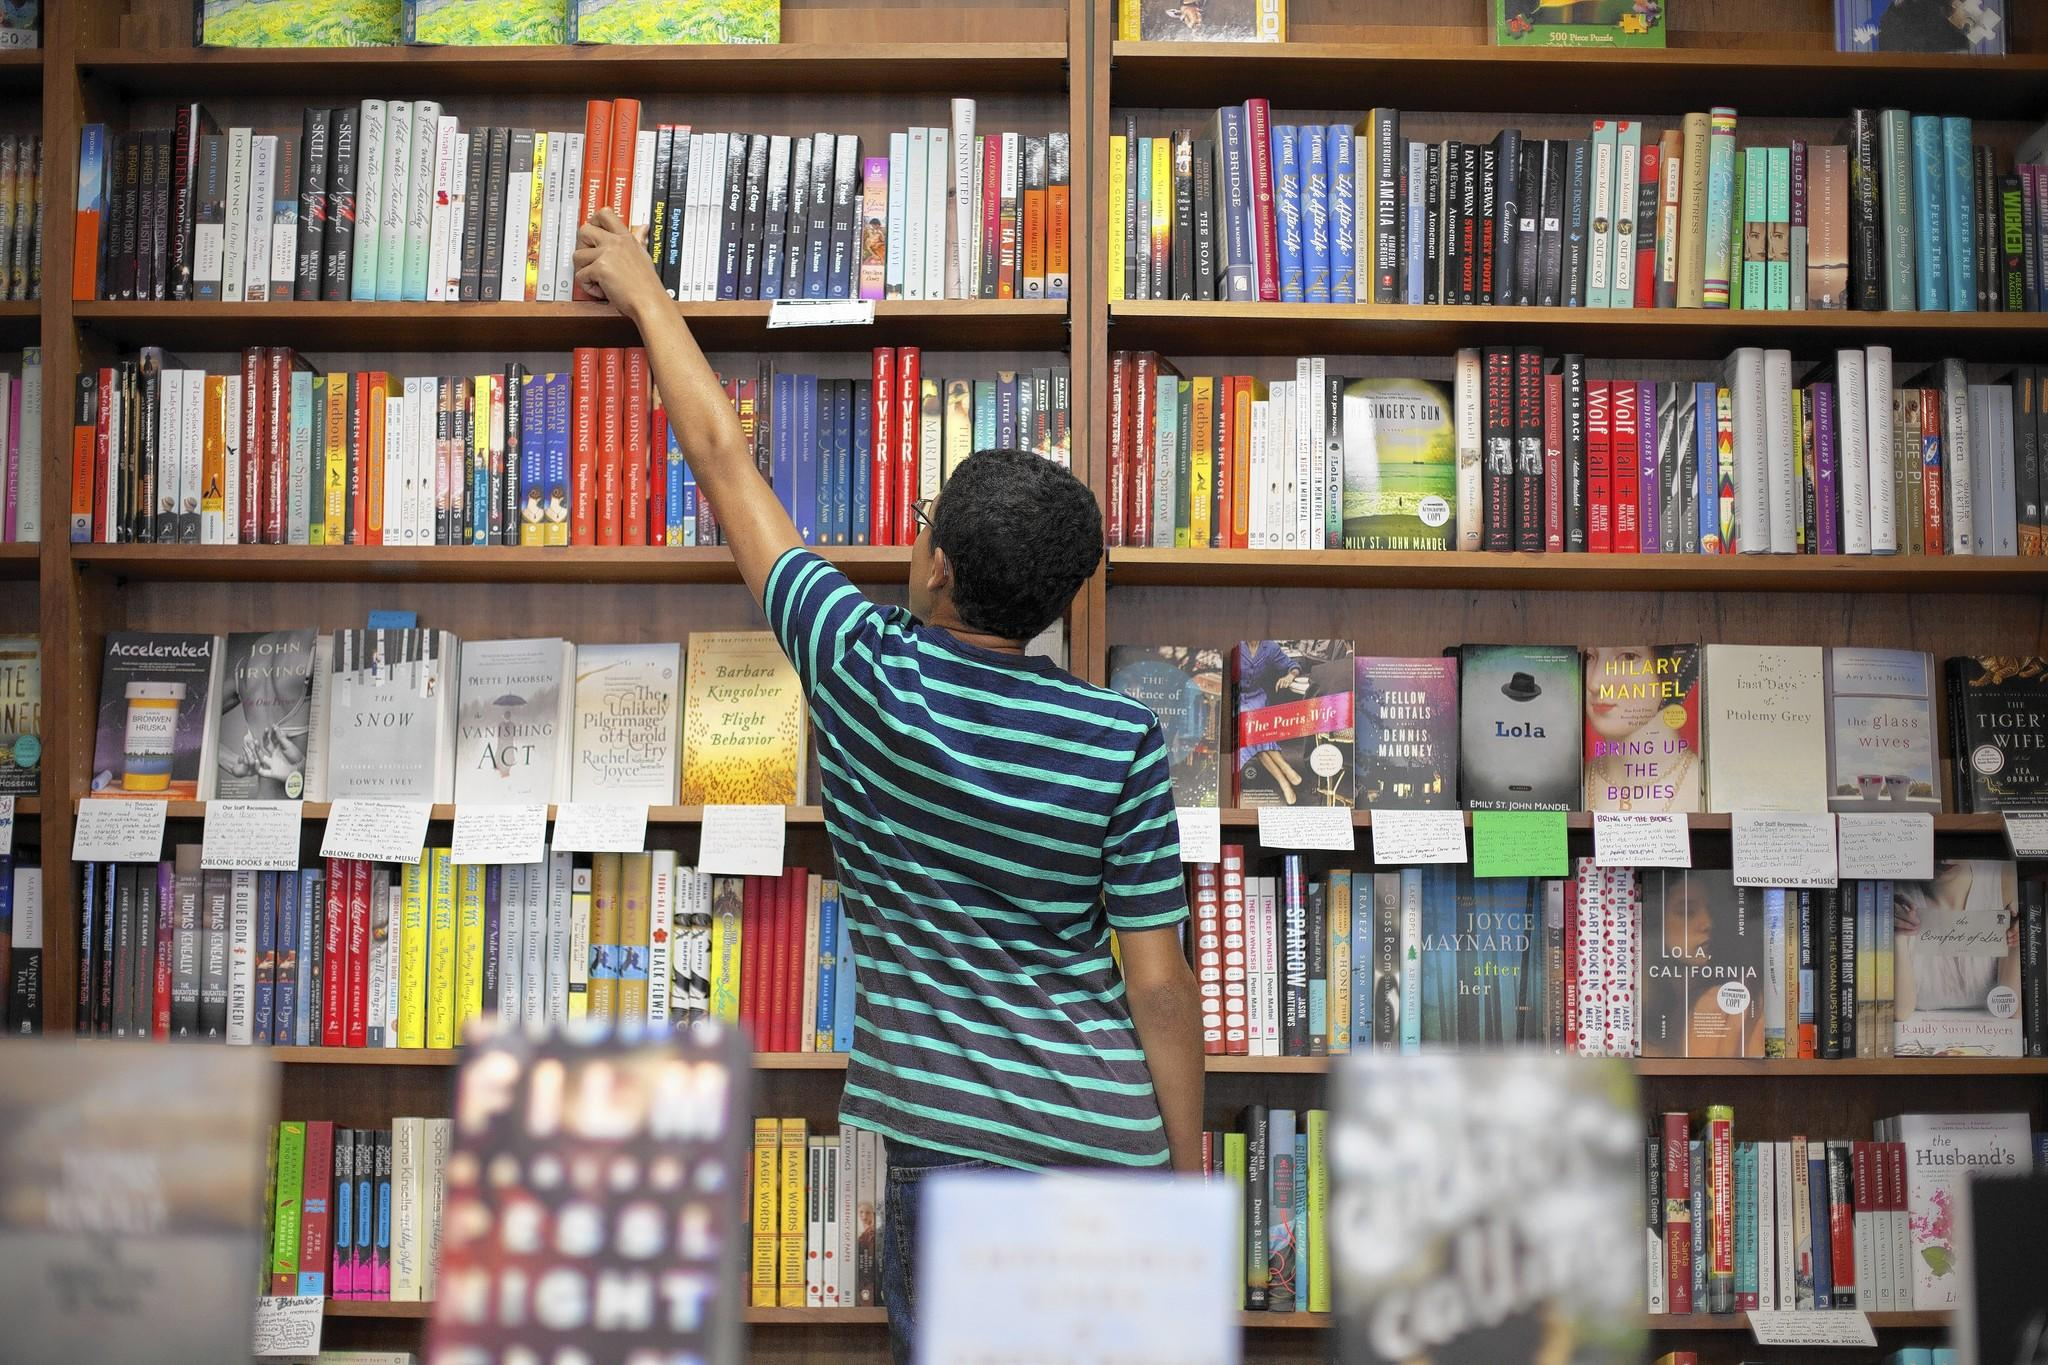 The Biblioracle believes that bookstores play an important role in today's culture.